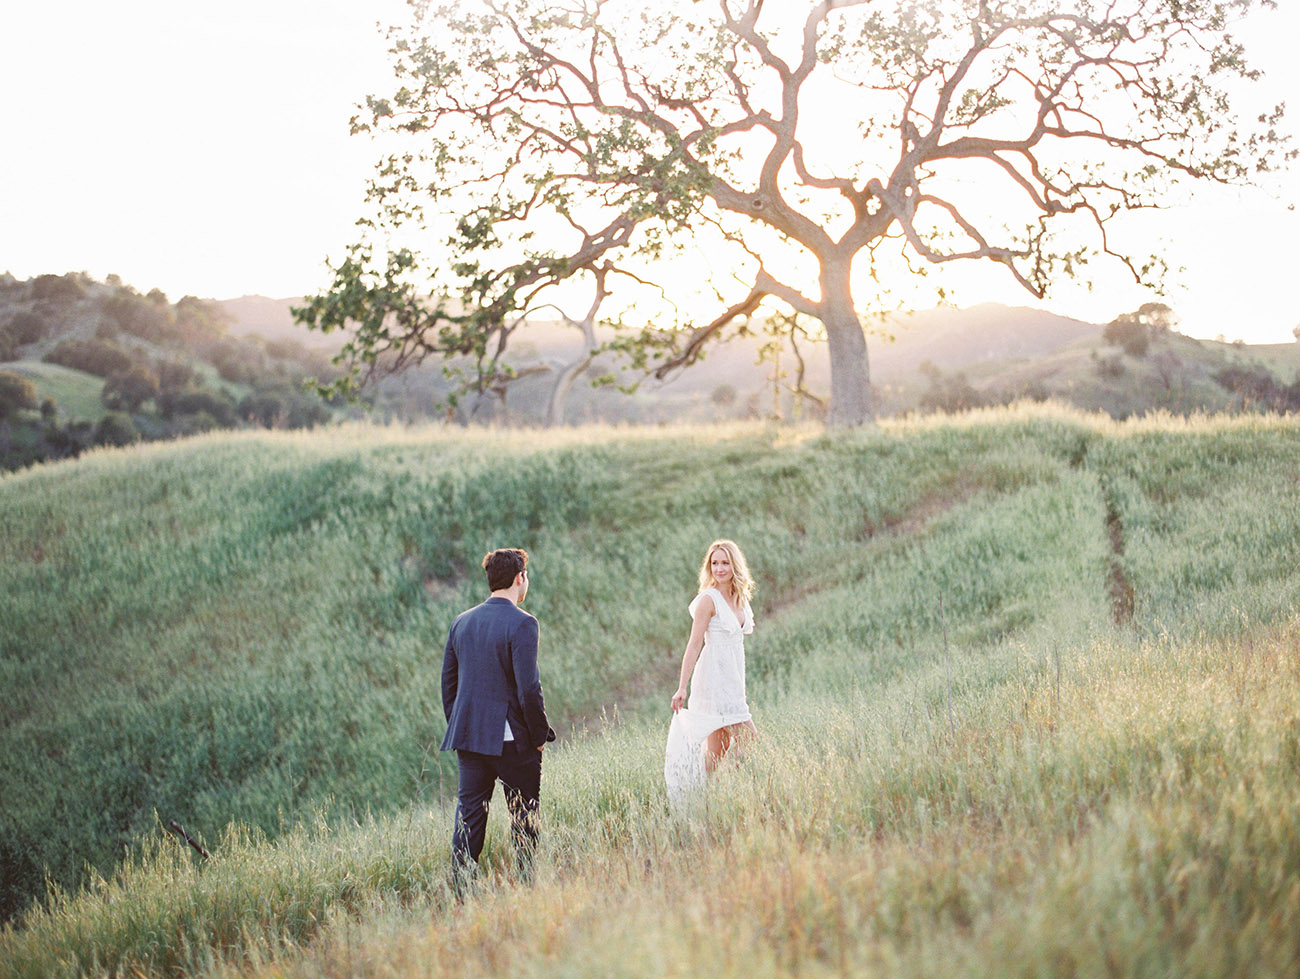 Anna Camp and Skylar Astin Engagement Photo